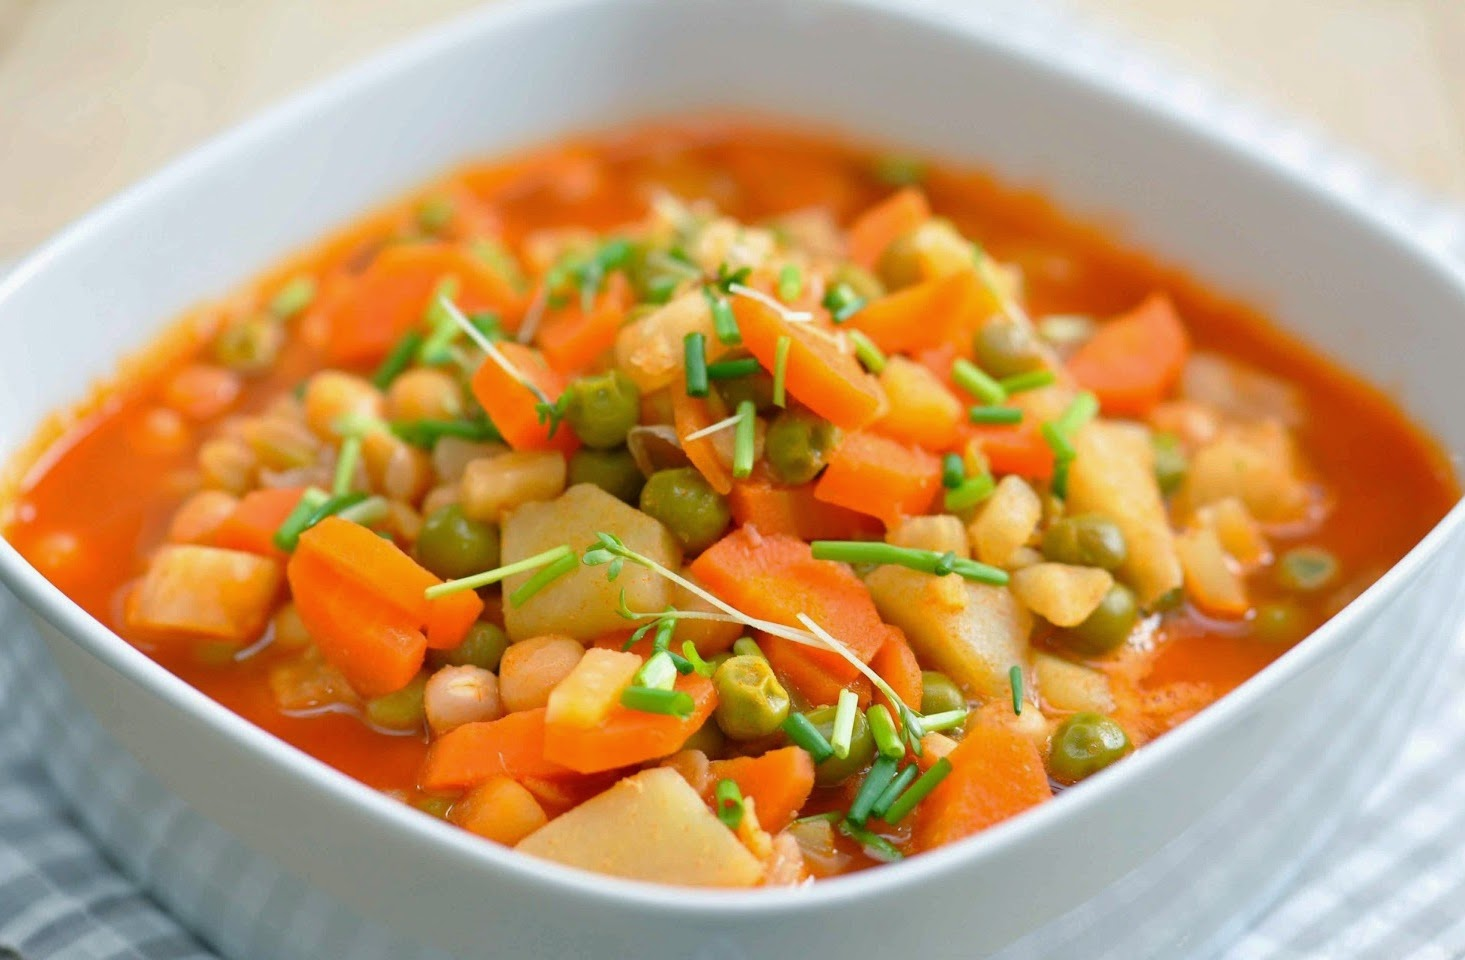 Eintopf soup easy recipes from germany recipes tab eintopf soup easy recipes from germany forumfinder Gallery